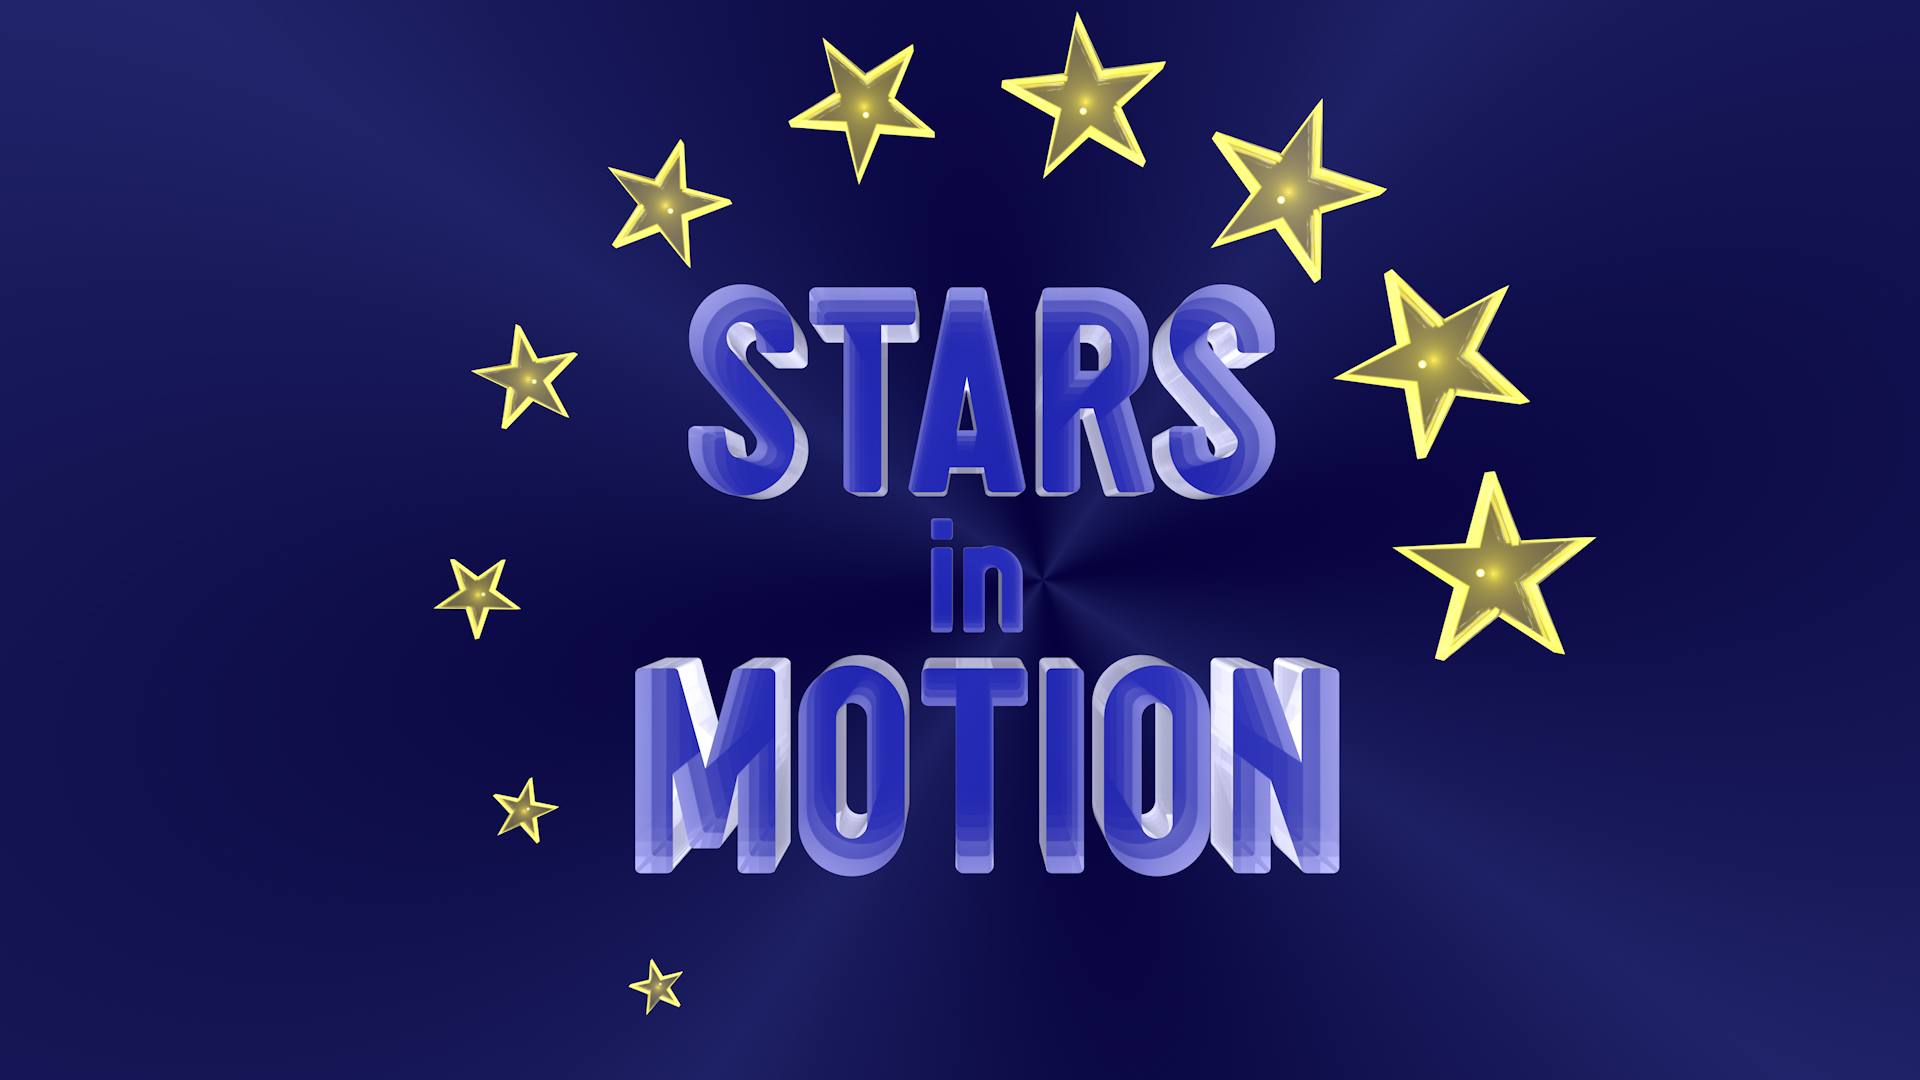 Stars in Motion